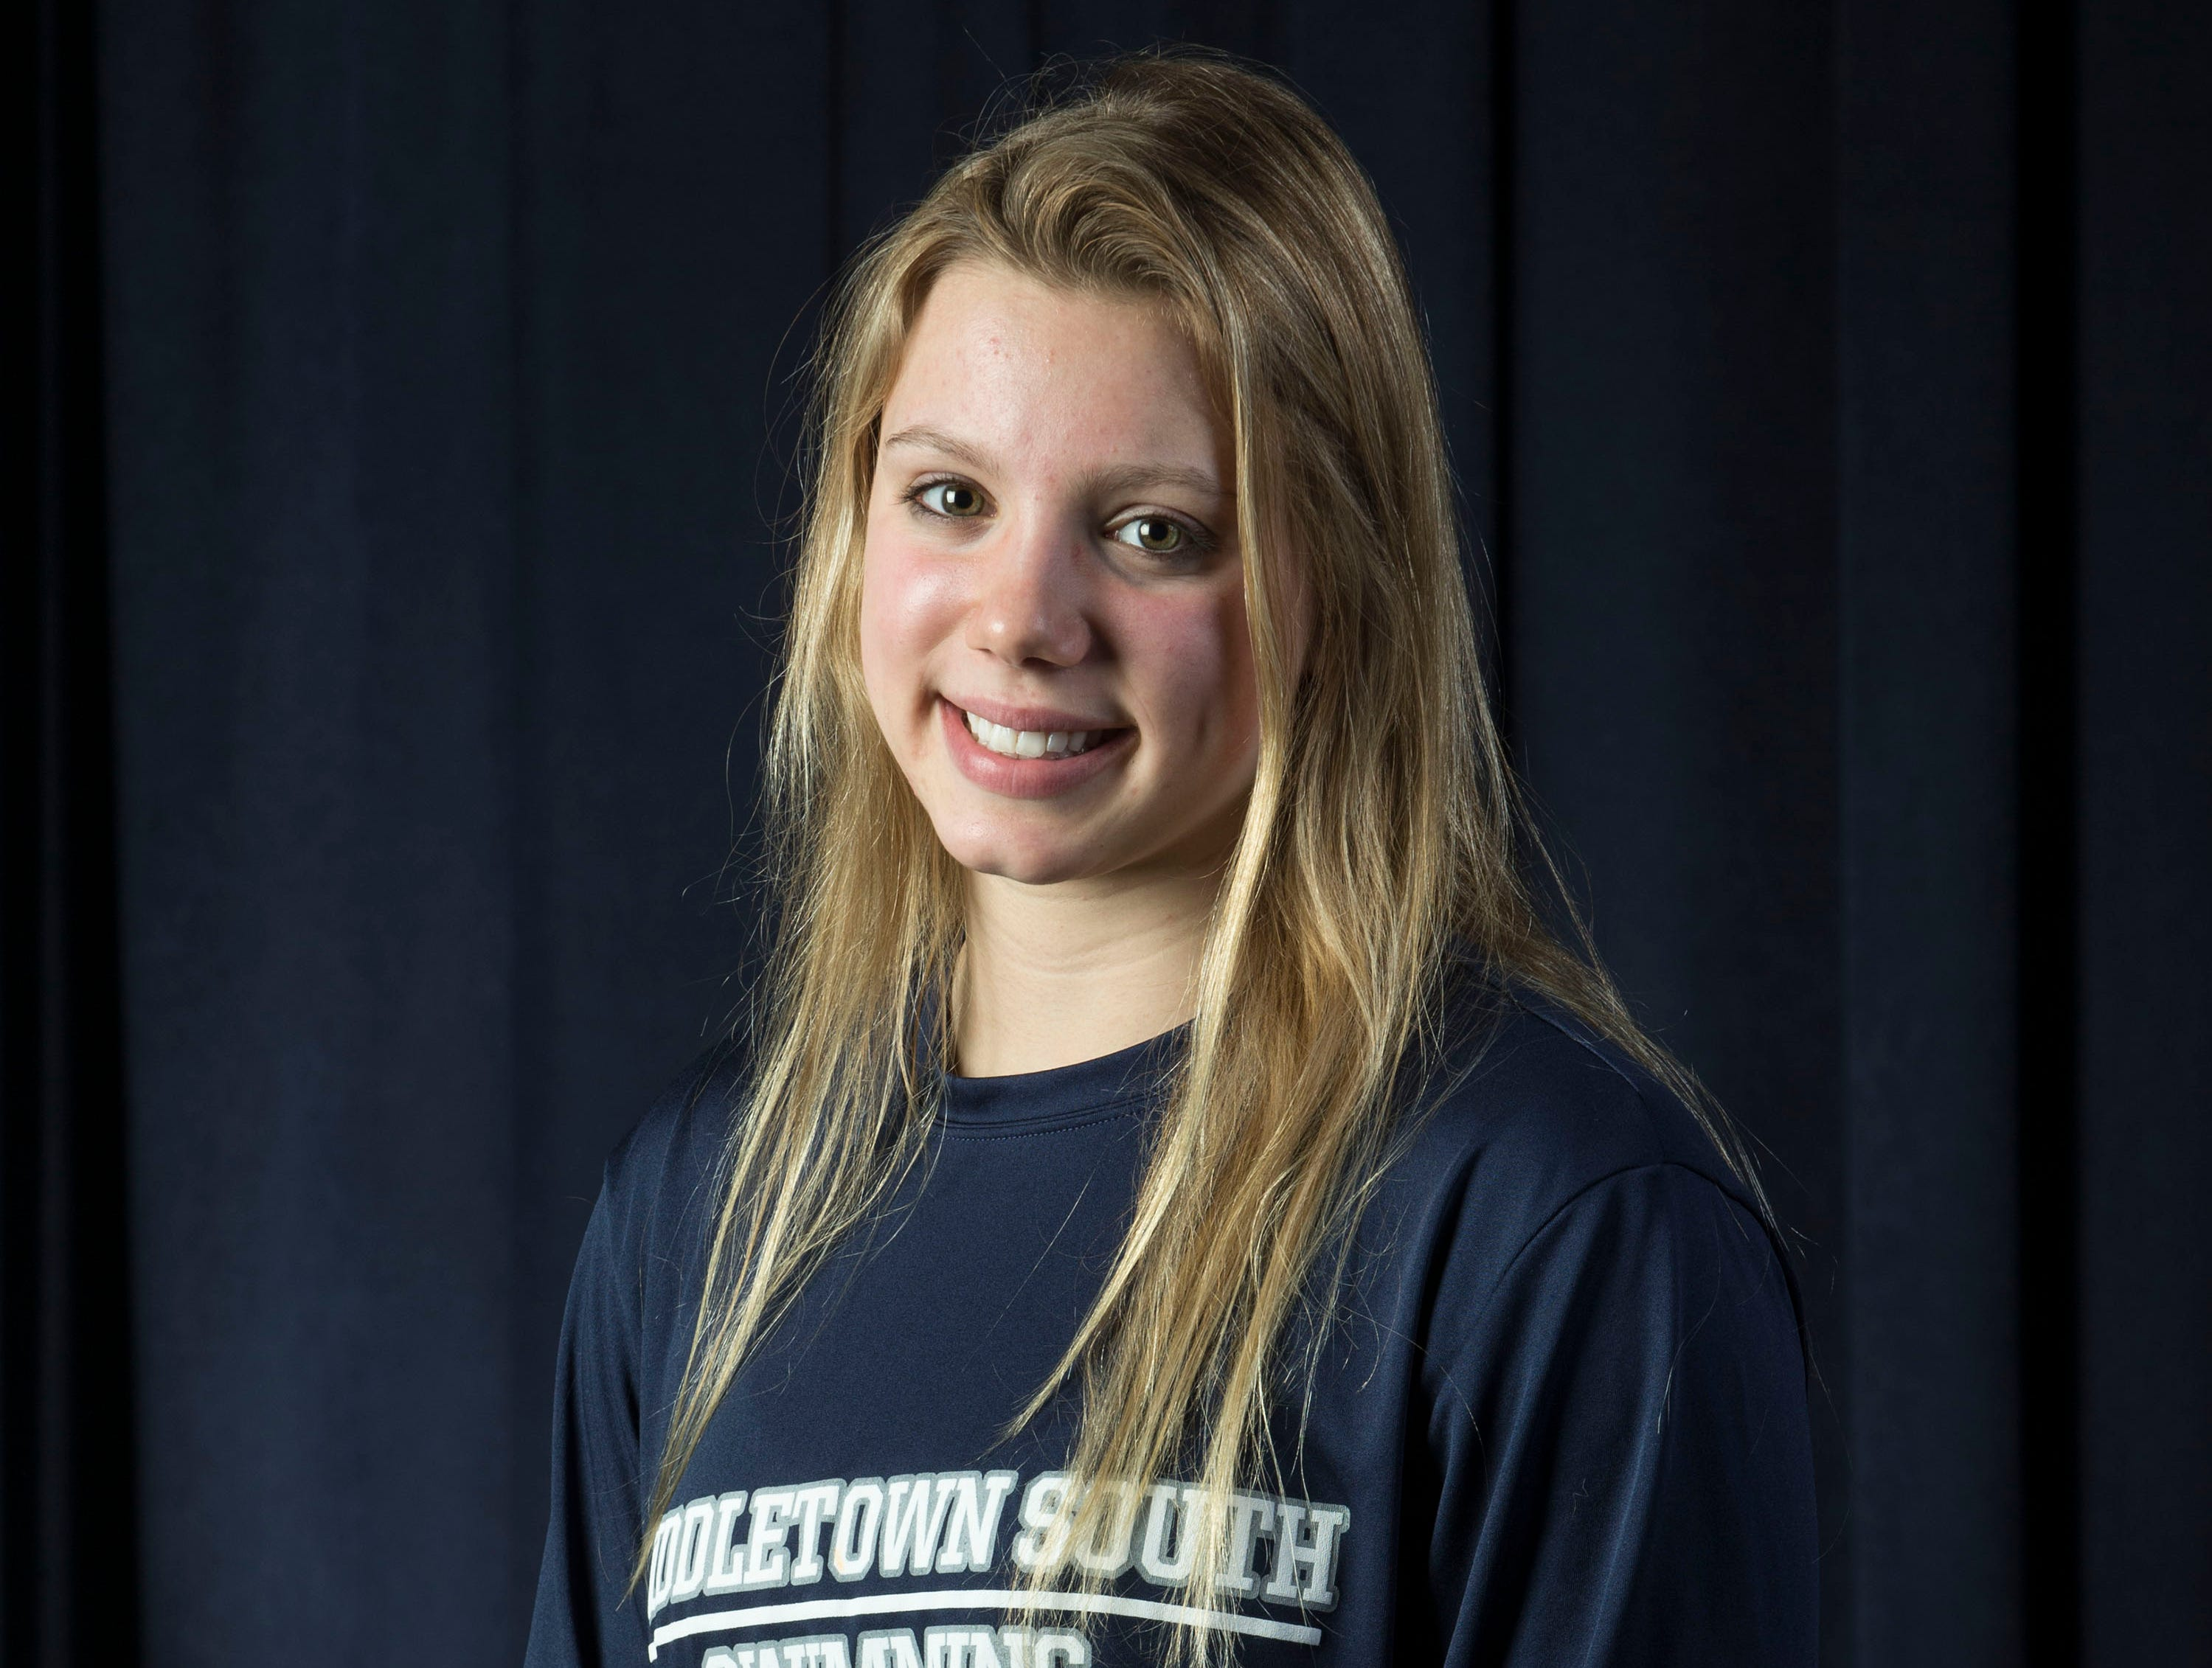 The 2019 All-Shore Girls Swim Team- Victoria Ireland of Middletown South